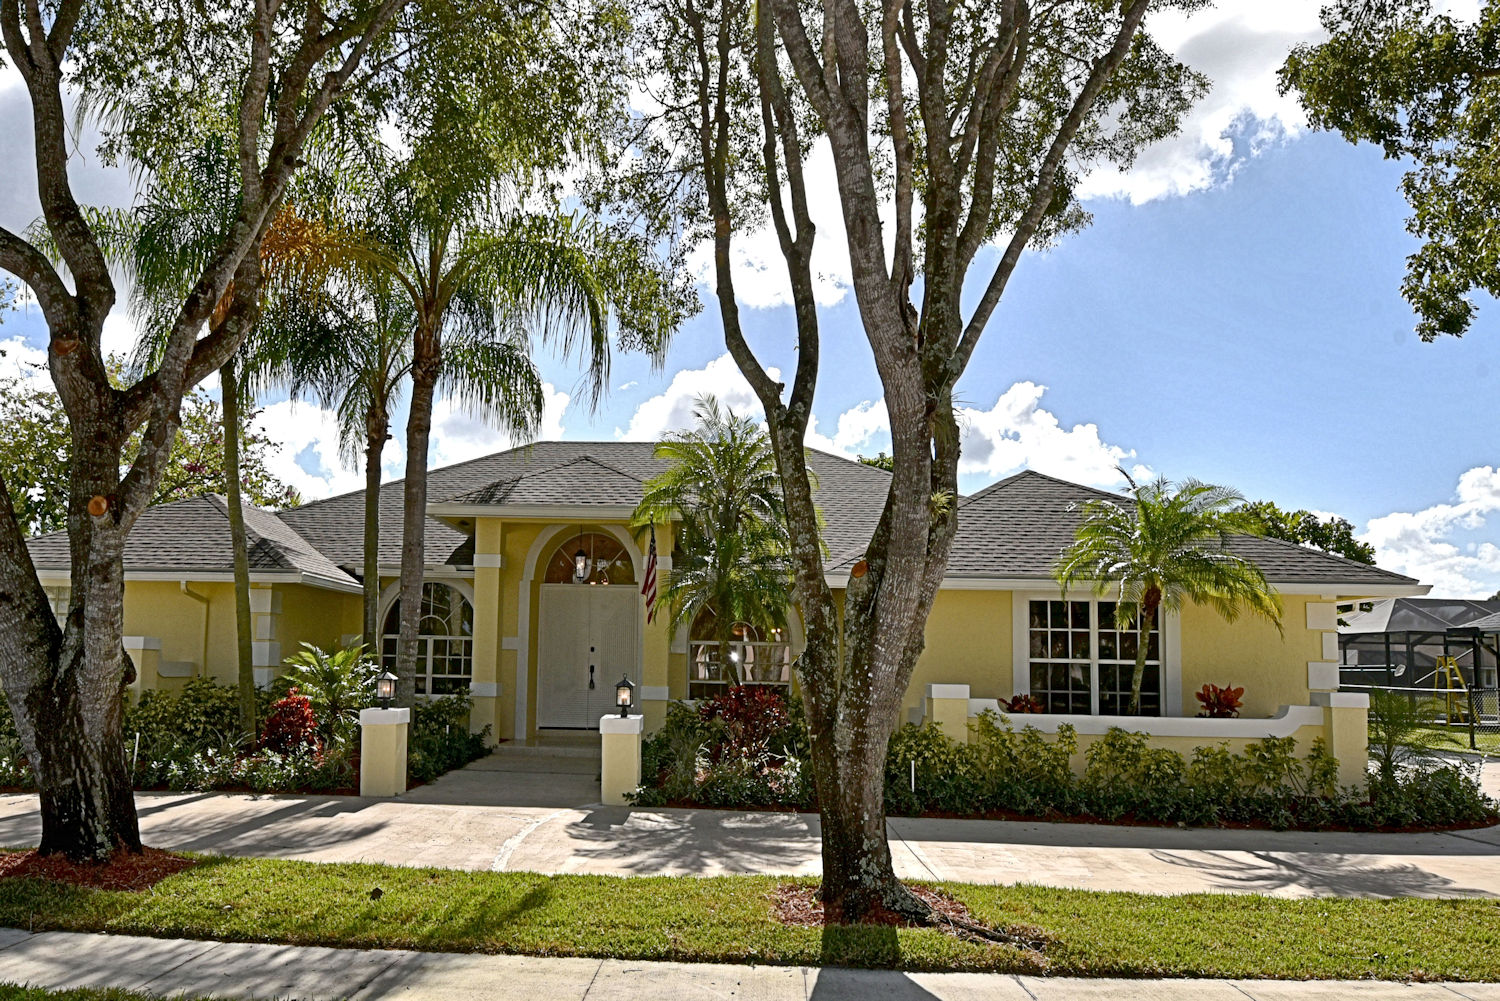 Cash For Homes In Palm Beach Gardens Fast And Easy Home Buyer